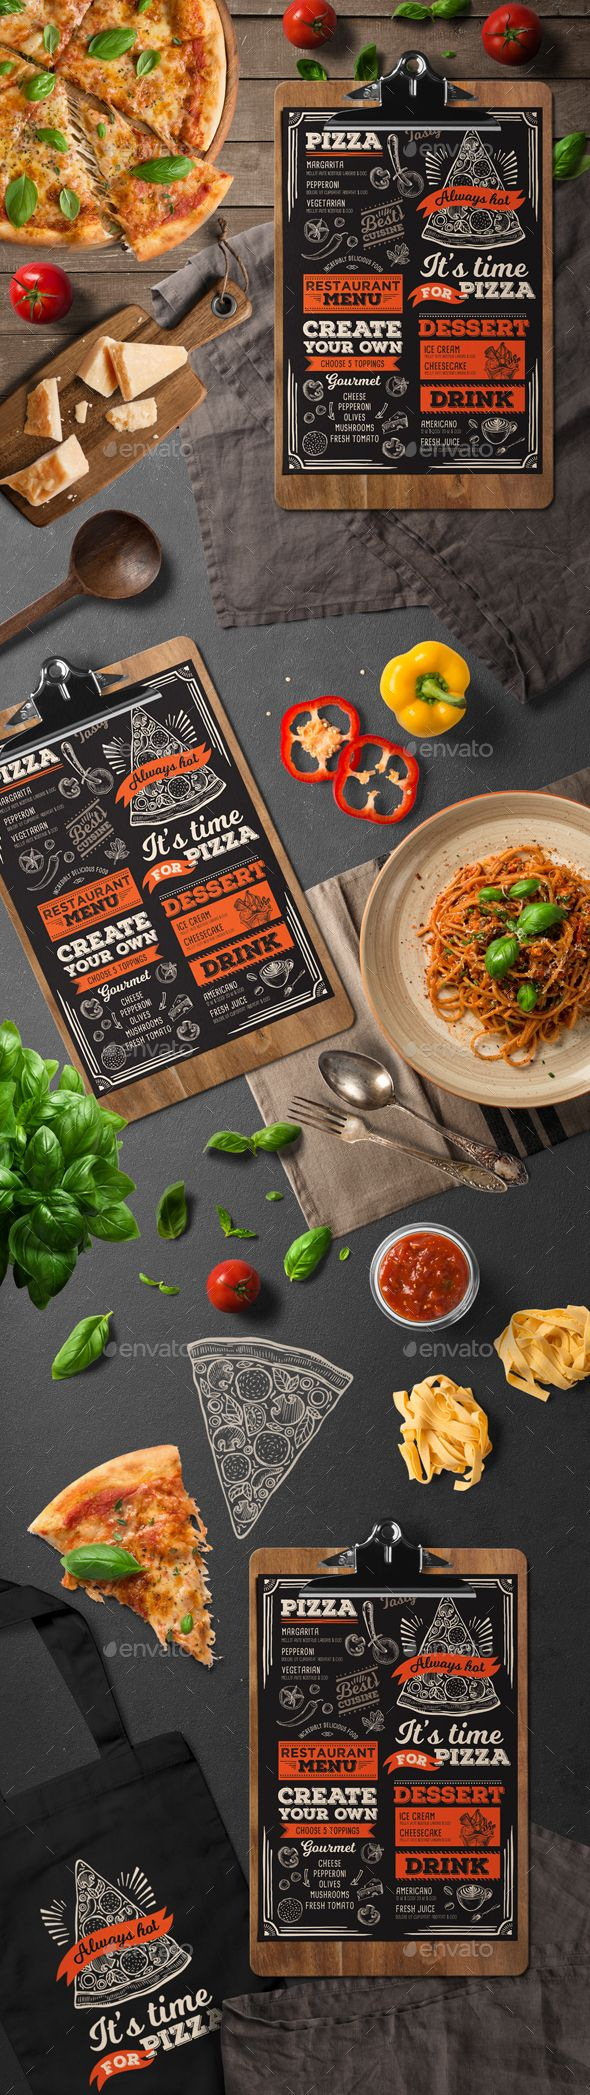 Italian Food Menu — Photoshop PSD #food template #food menu • Download ➝ https://graphicriver.net/item/italian-food-menu/19668069?ref=pxcr